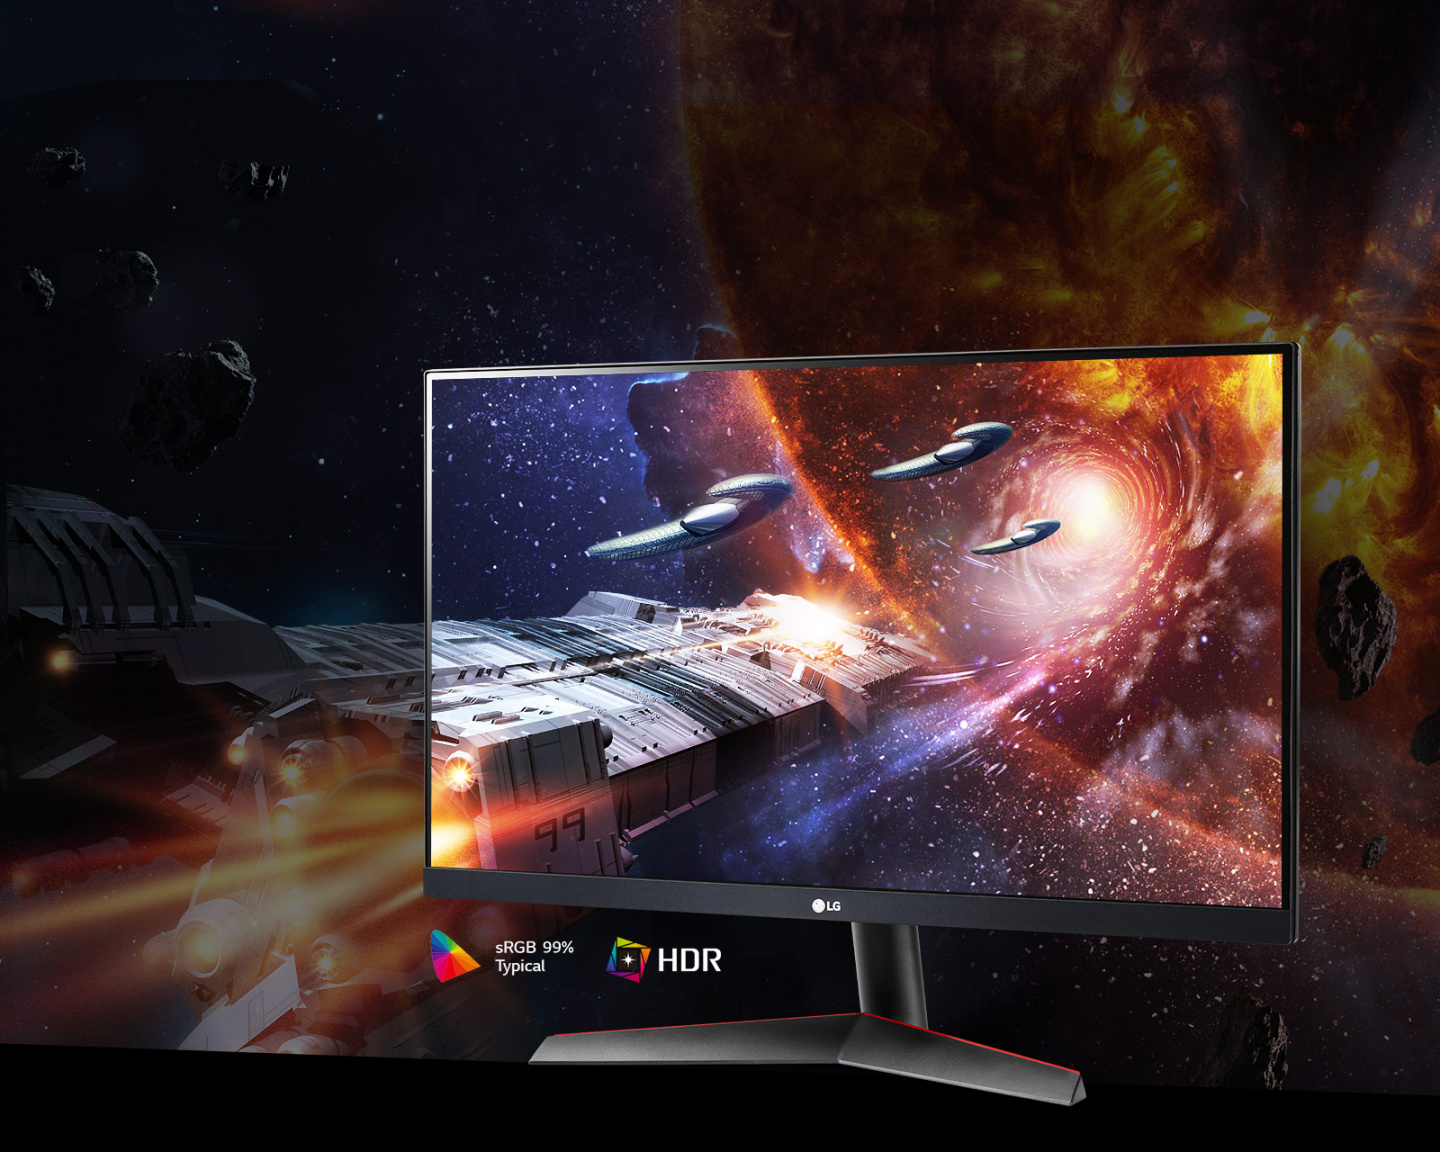 The Gaming Scene in Rich Colors and Contrast on The Monitor Supporting Hdr10 With Srgb 99% (Typ.)